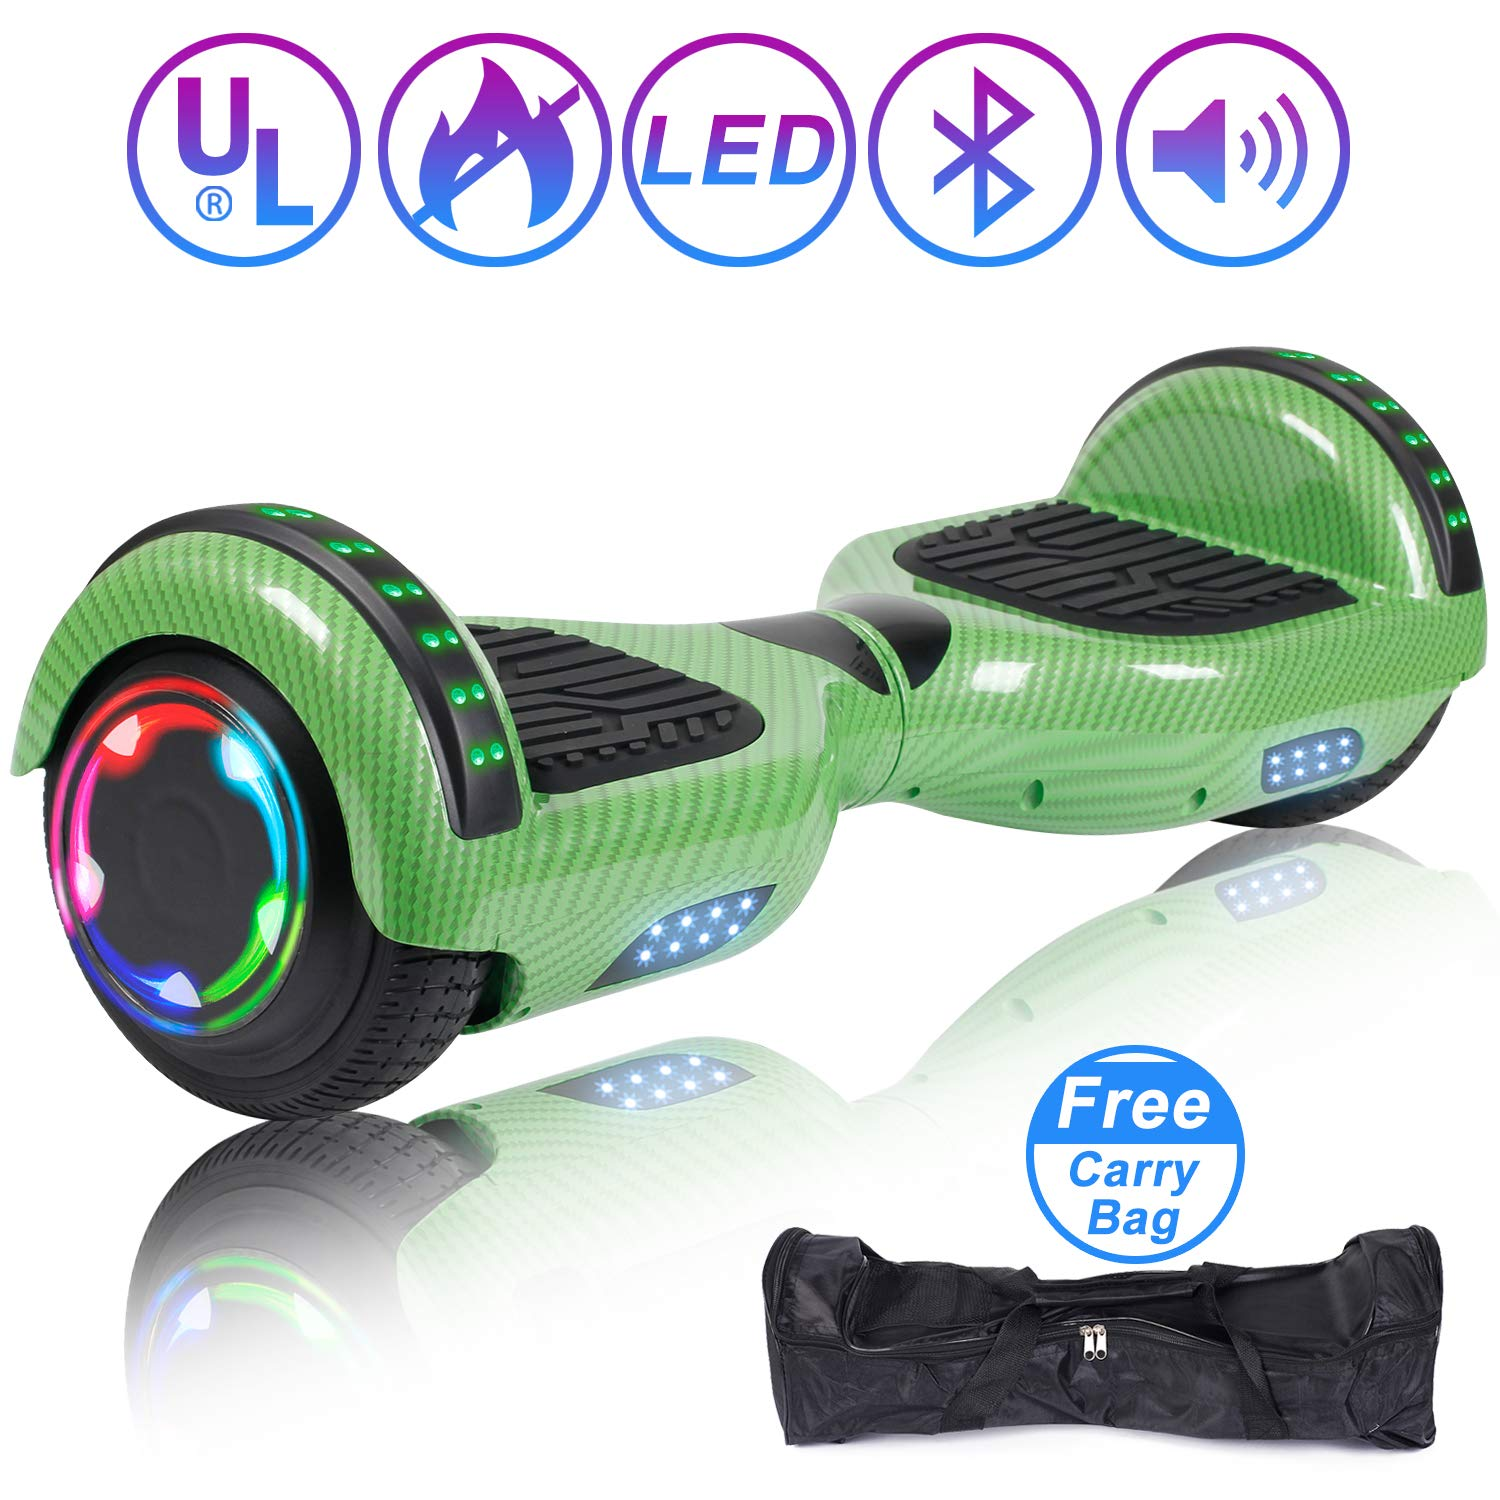 Hoverboard Self Balancing Scooter 6.5'' Two-Wheel Self Balancing Hoverboard with Bluetooth Speaker and LED Lights Electric Scooter for Adult Kids Gift UL 2272 Certified Fun Edition - Carbon Green